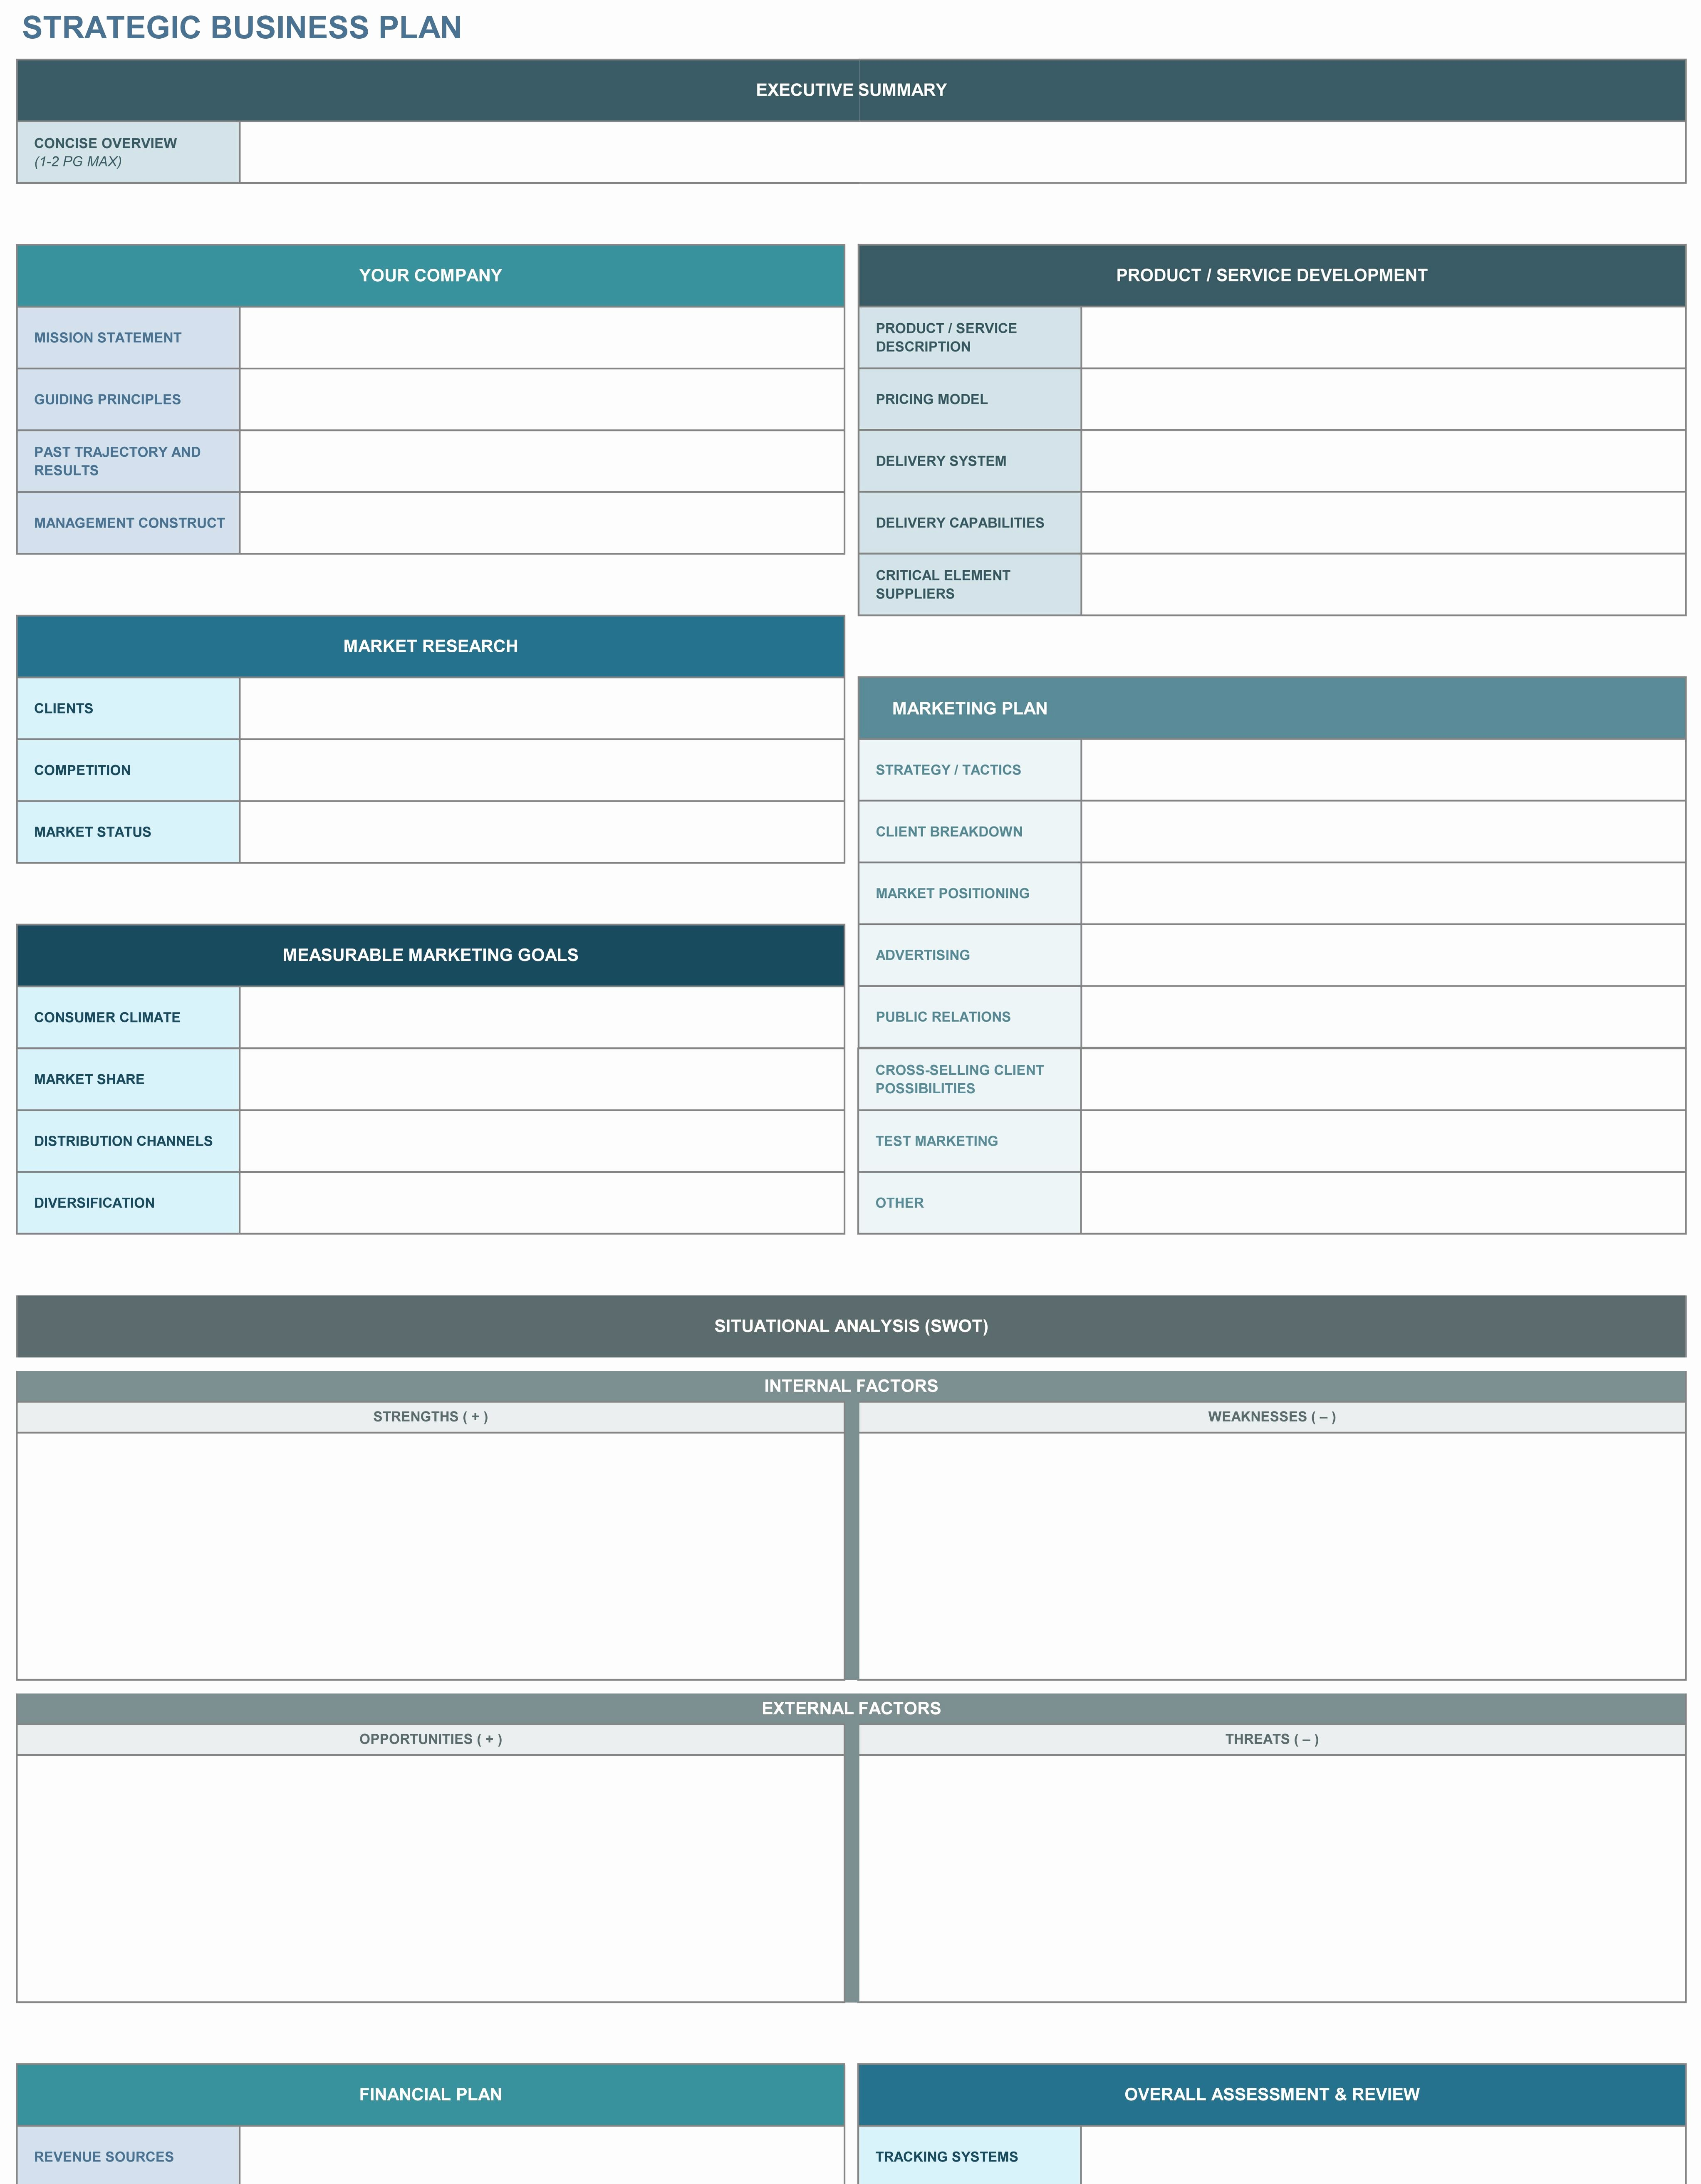 Business Plan Template Excel Elegant 9 Free Strategic Business Plan Excel Templates